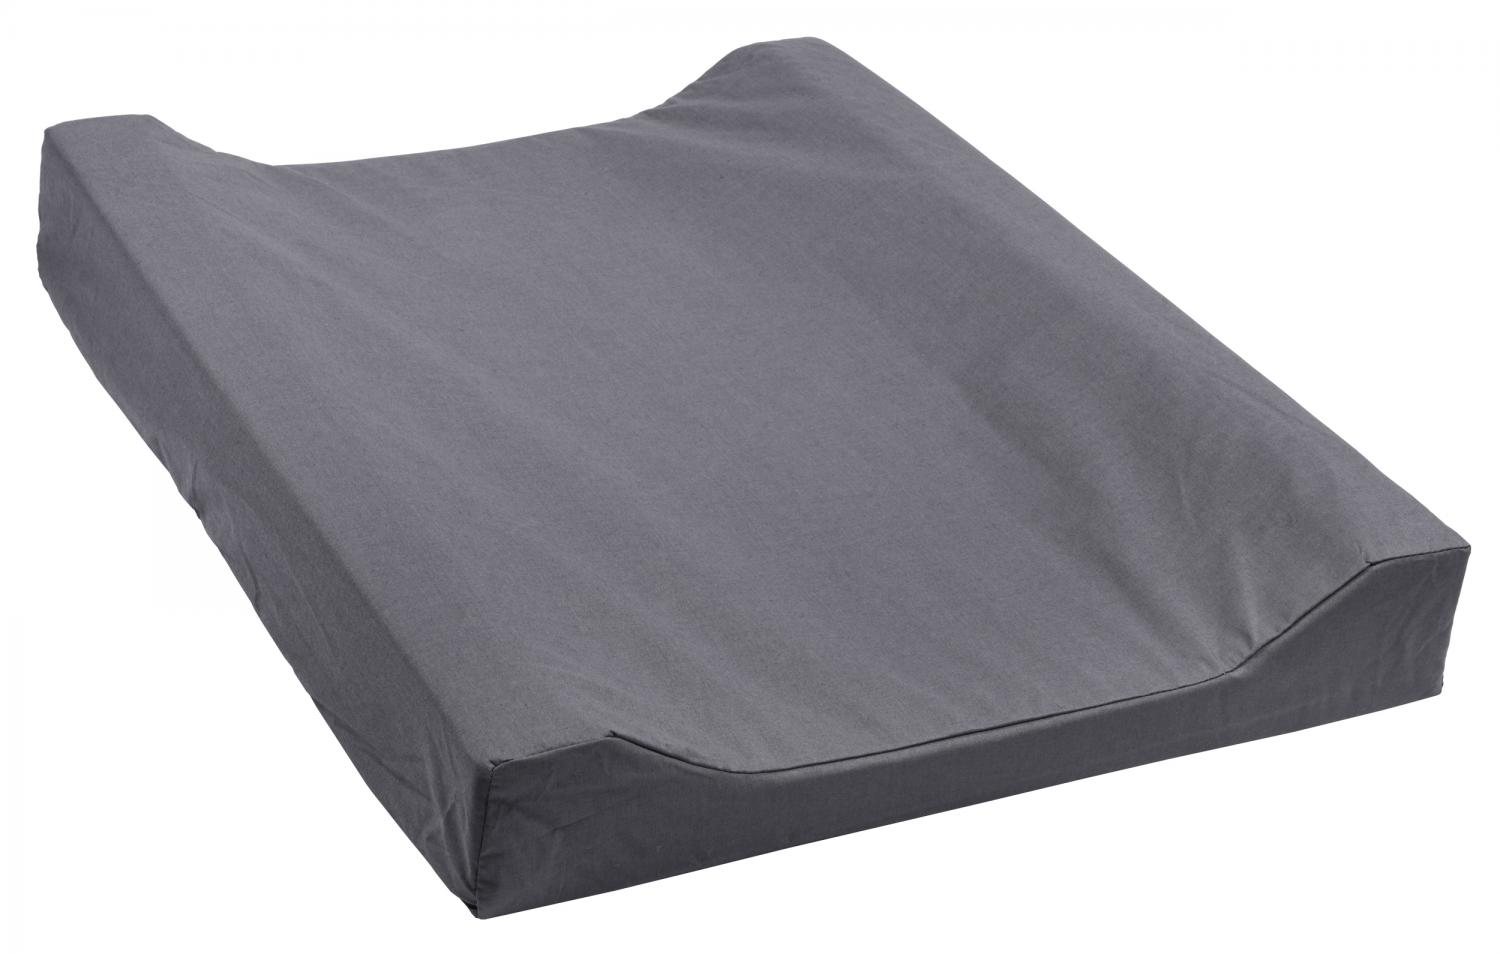 Changing pad standard | Graphite | Sensitive